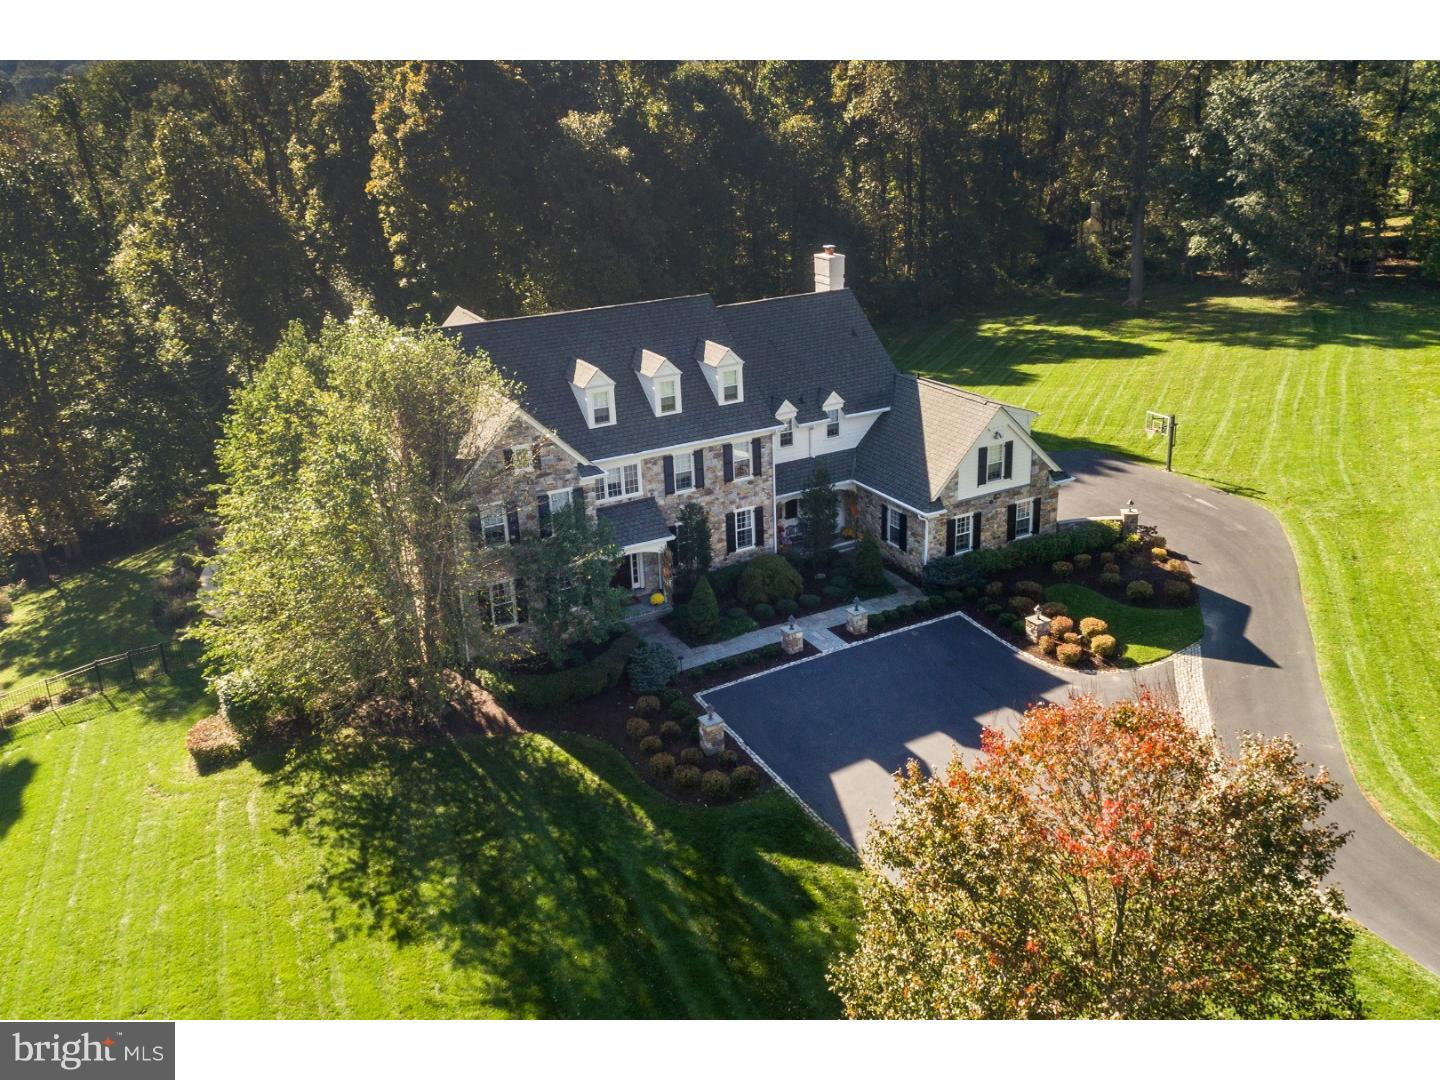 44 Farrier Lane Newtown Square, PA 19073